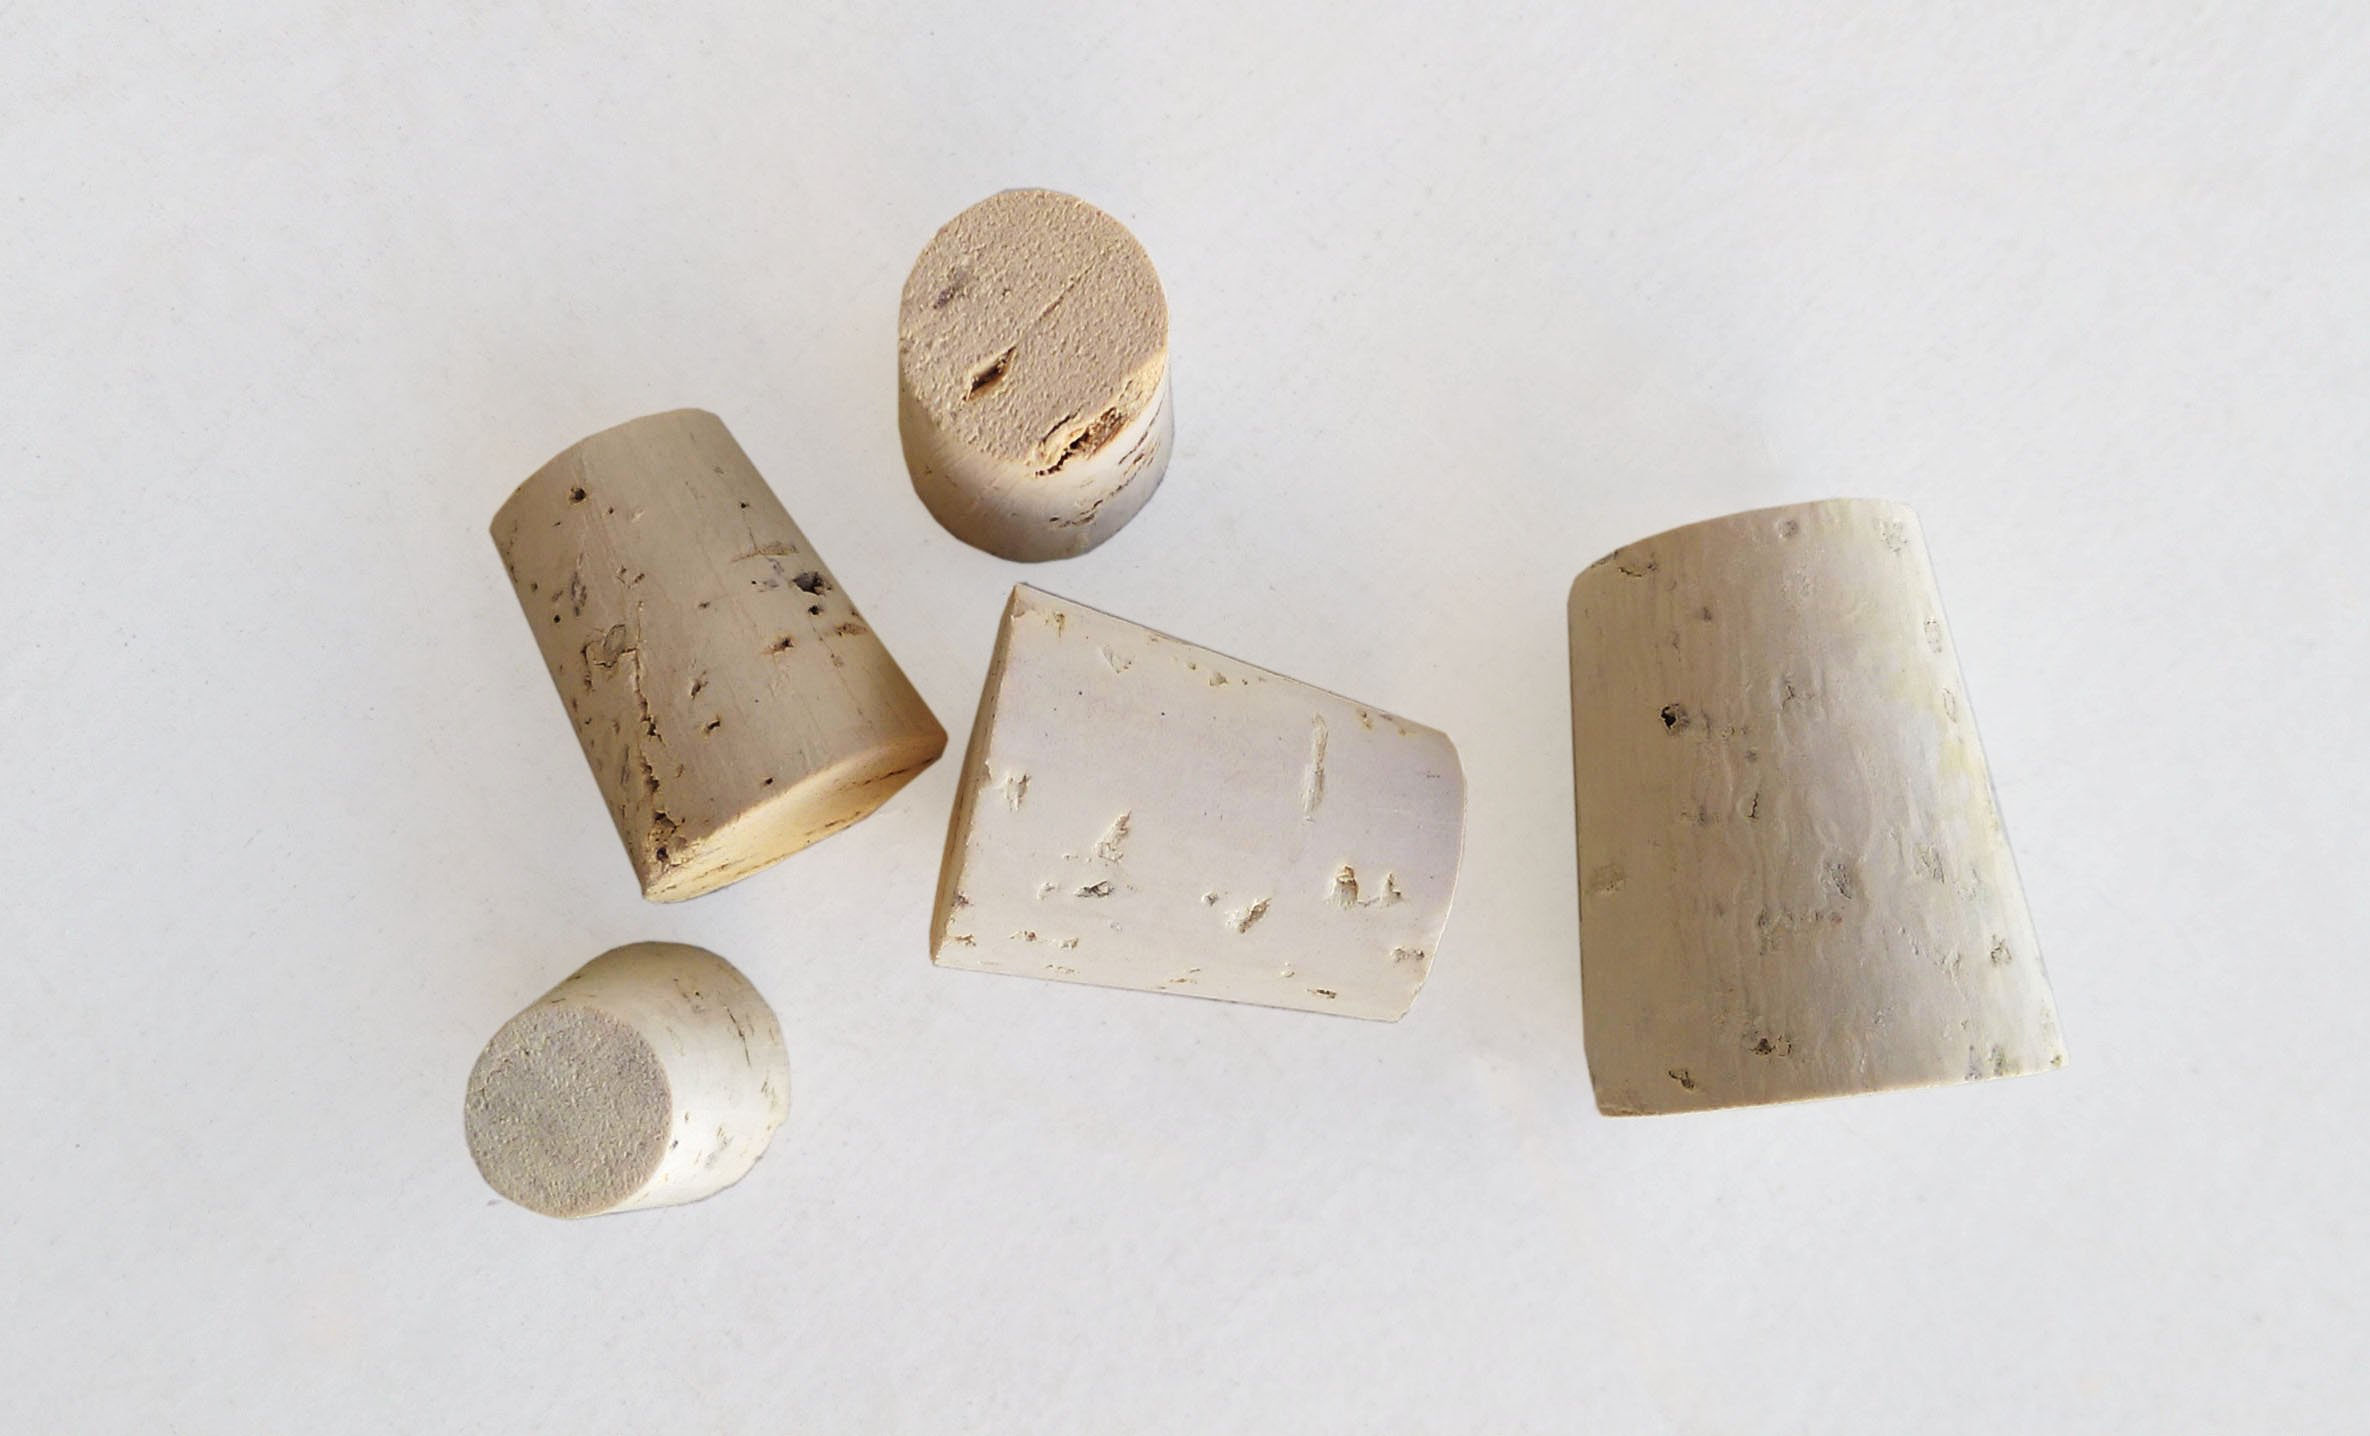 Small bag of Mixed Regular Length (RL) Natural Tapered Corks Bag of 45 (RL04, RL05, RL06, RL08, RL10)